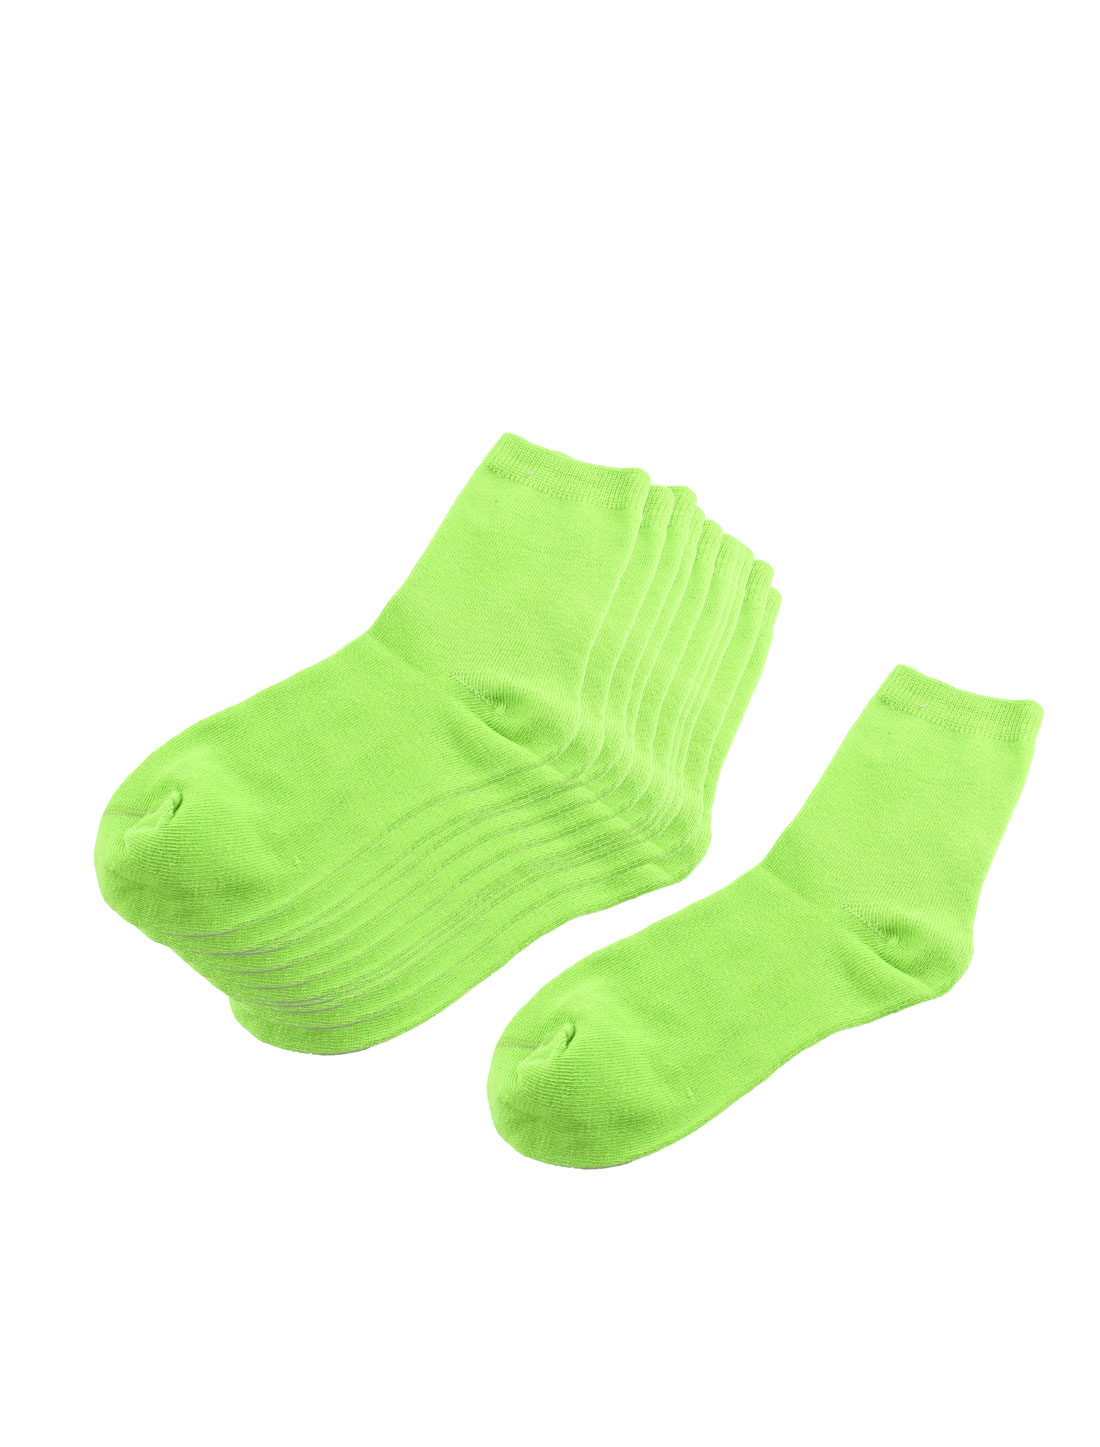 5 Pairs Light Green Elastic Cotton Blends Ankle High Hosiery Socks for Lady